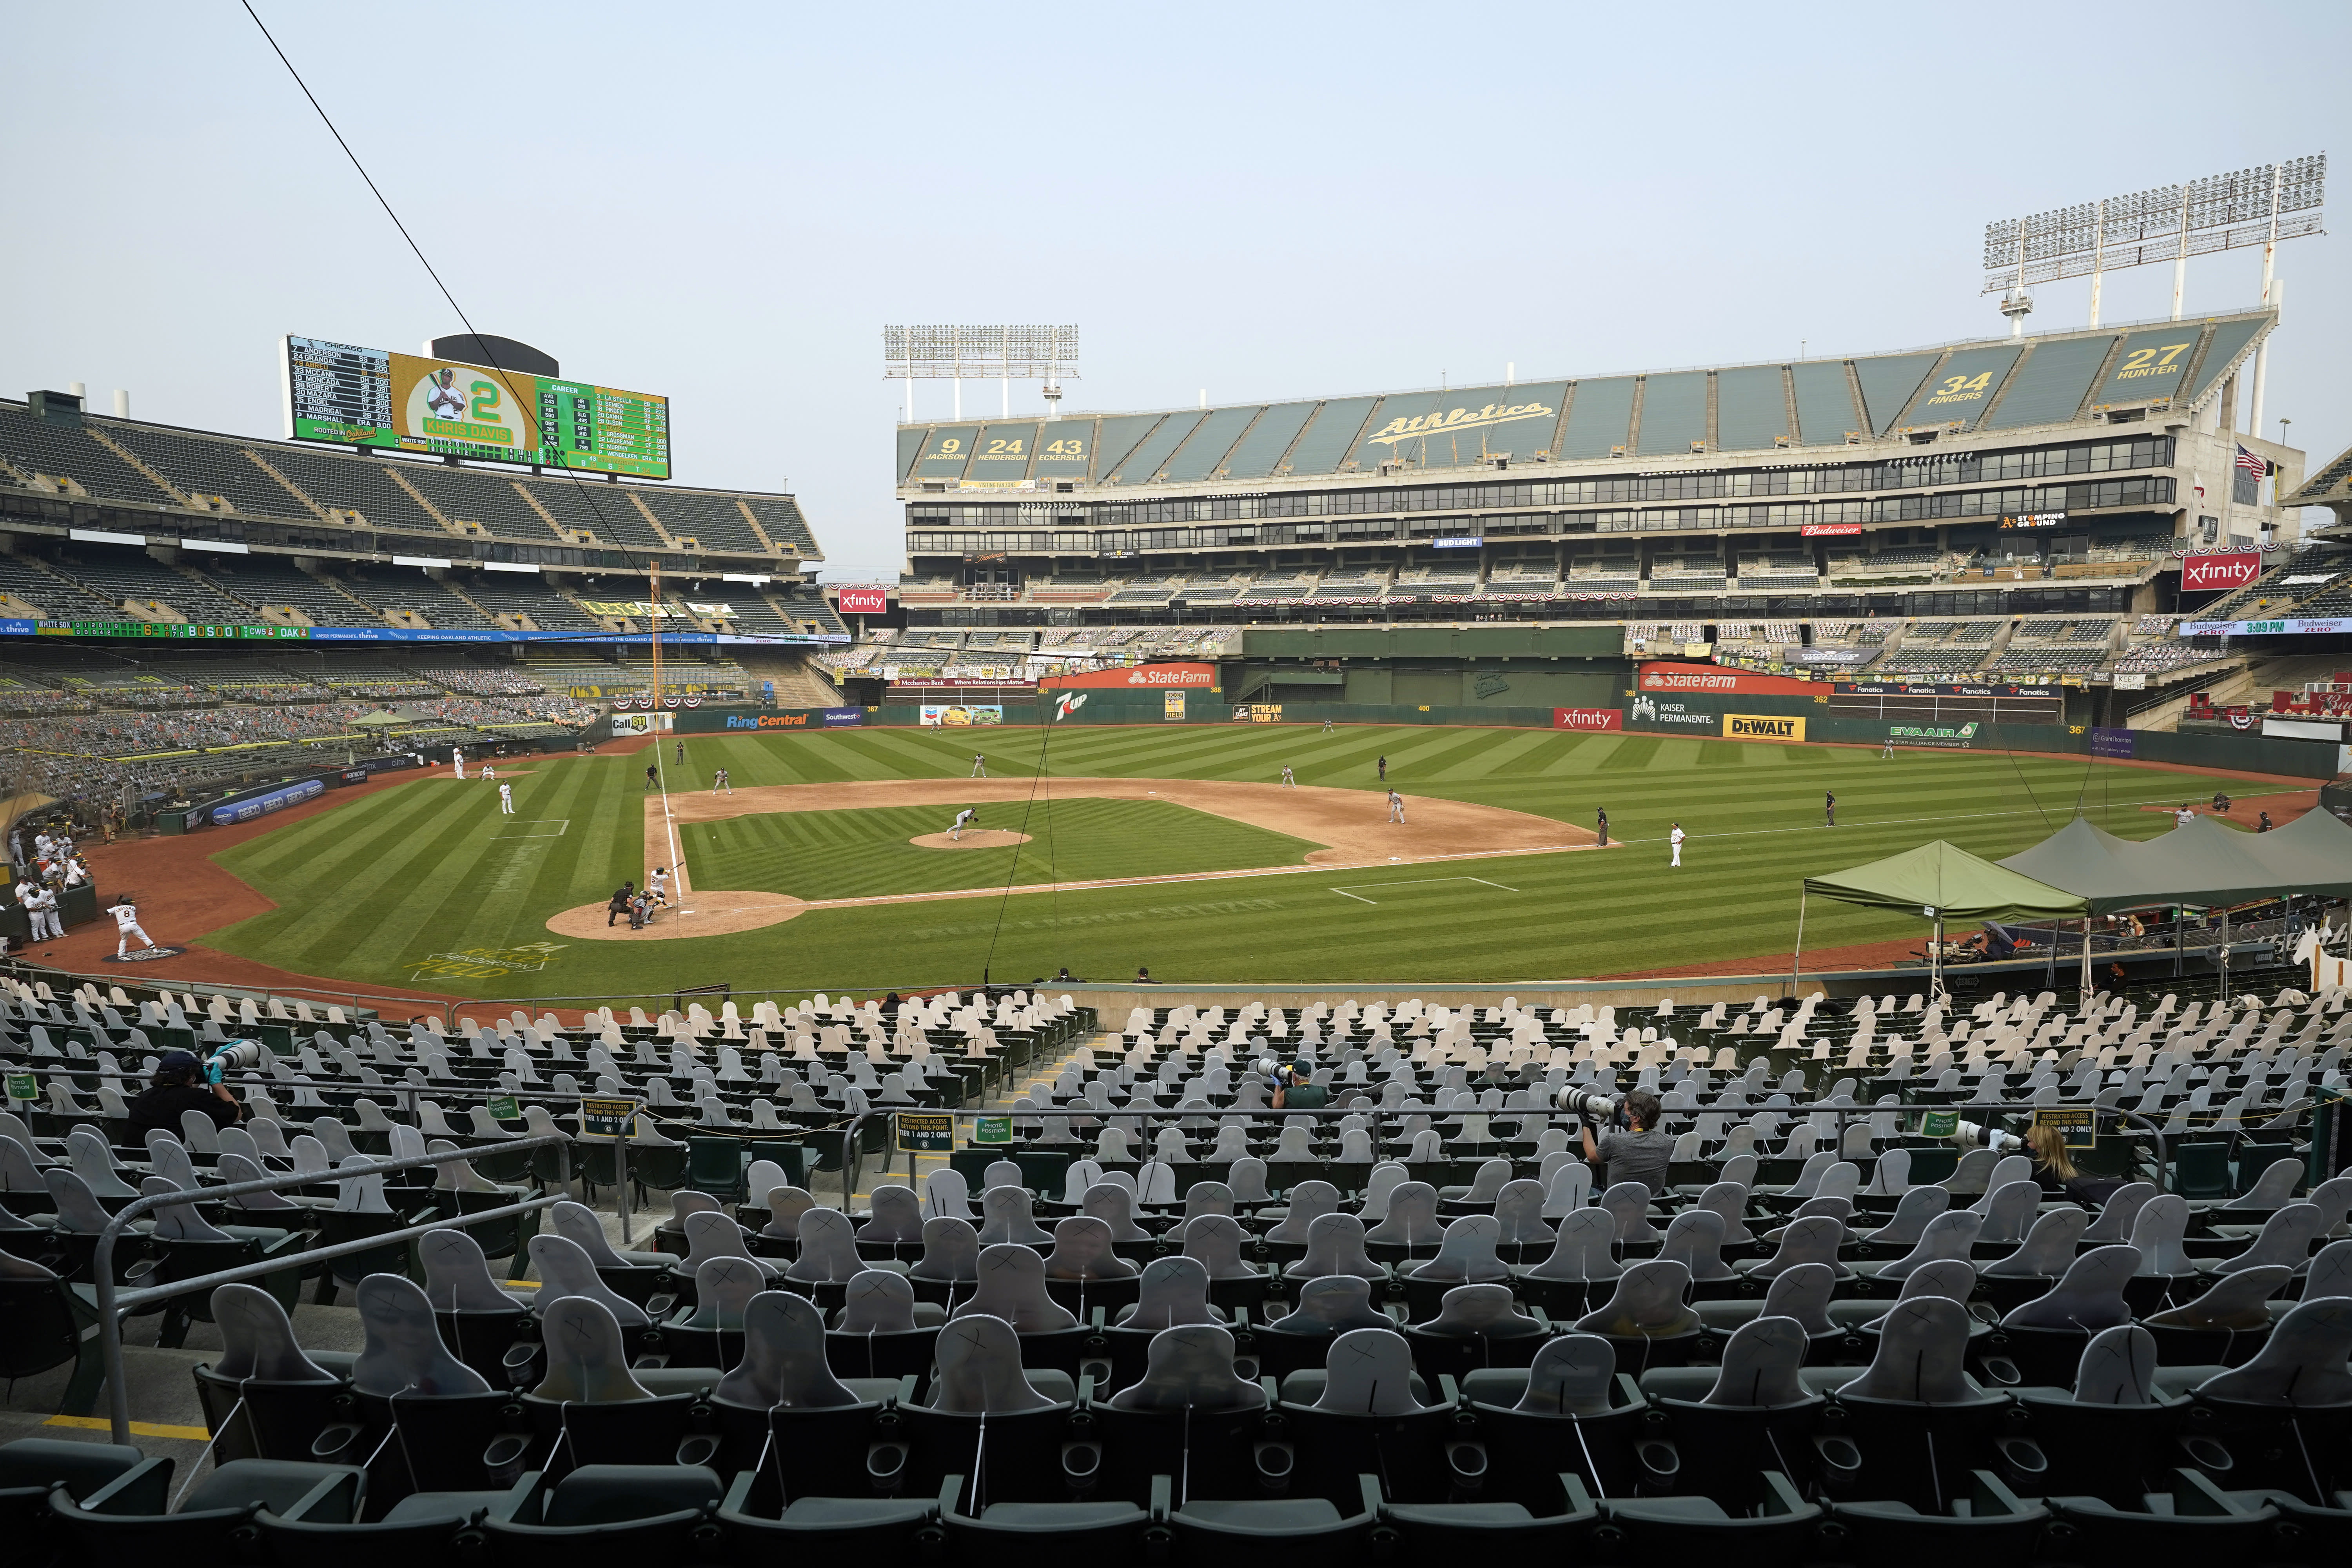 Oakland Athletics' Khris Davis hits a single off Chicago White Sox pitcher Evan Marshall in front of cutouts seated at Oakland Coliseum during the sixth inning of Game 3 of an American League wild-card baseball series Thursday, Oct. 1, 2020, in Oakland, Calif. (AP Photo/Eric Risberg)